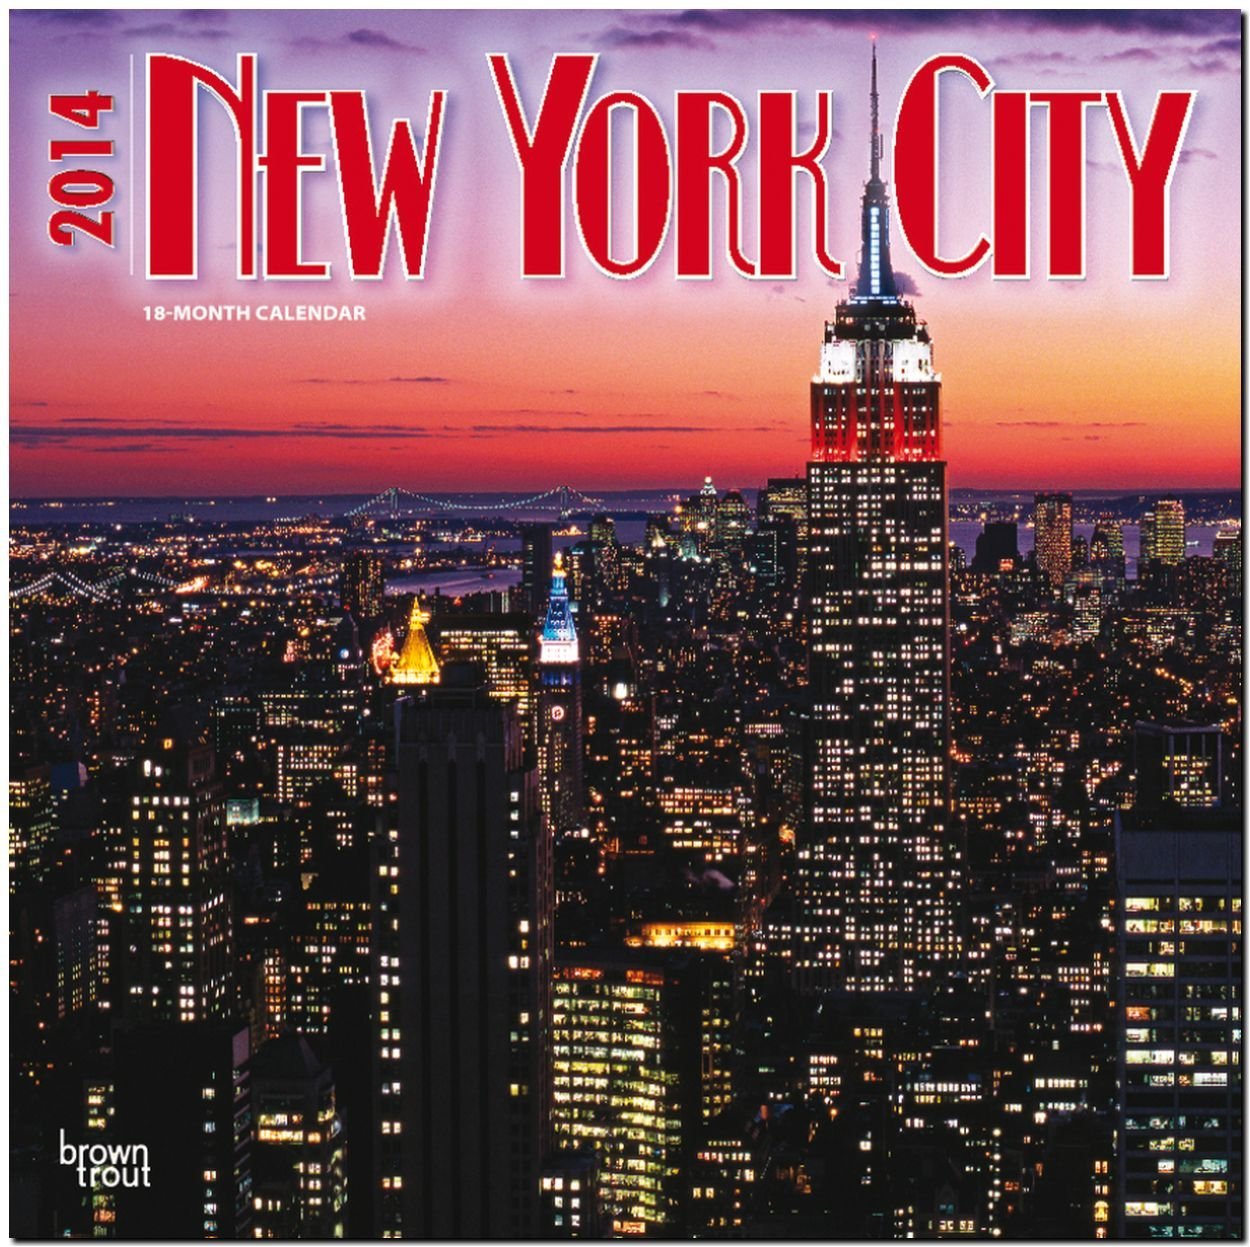 New York City 2014 - New York: Original BrownTrout-Kalender [Mehrsprachig] [Kalender]